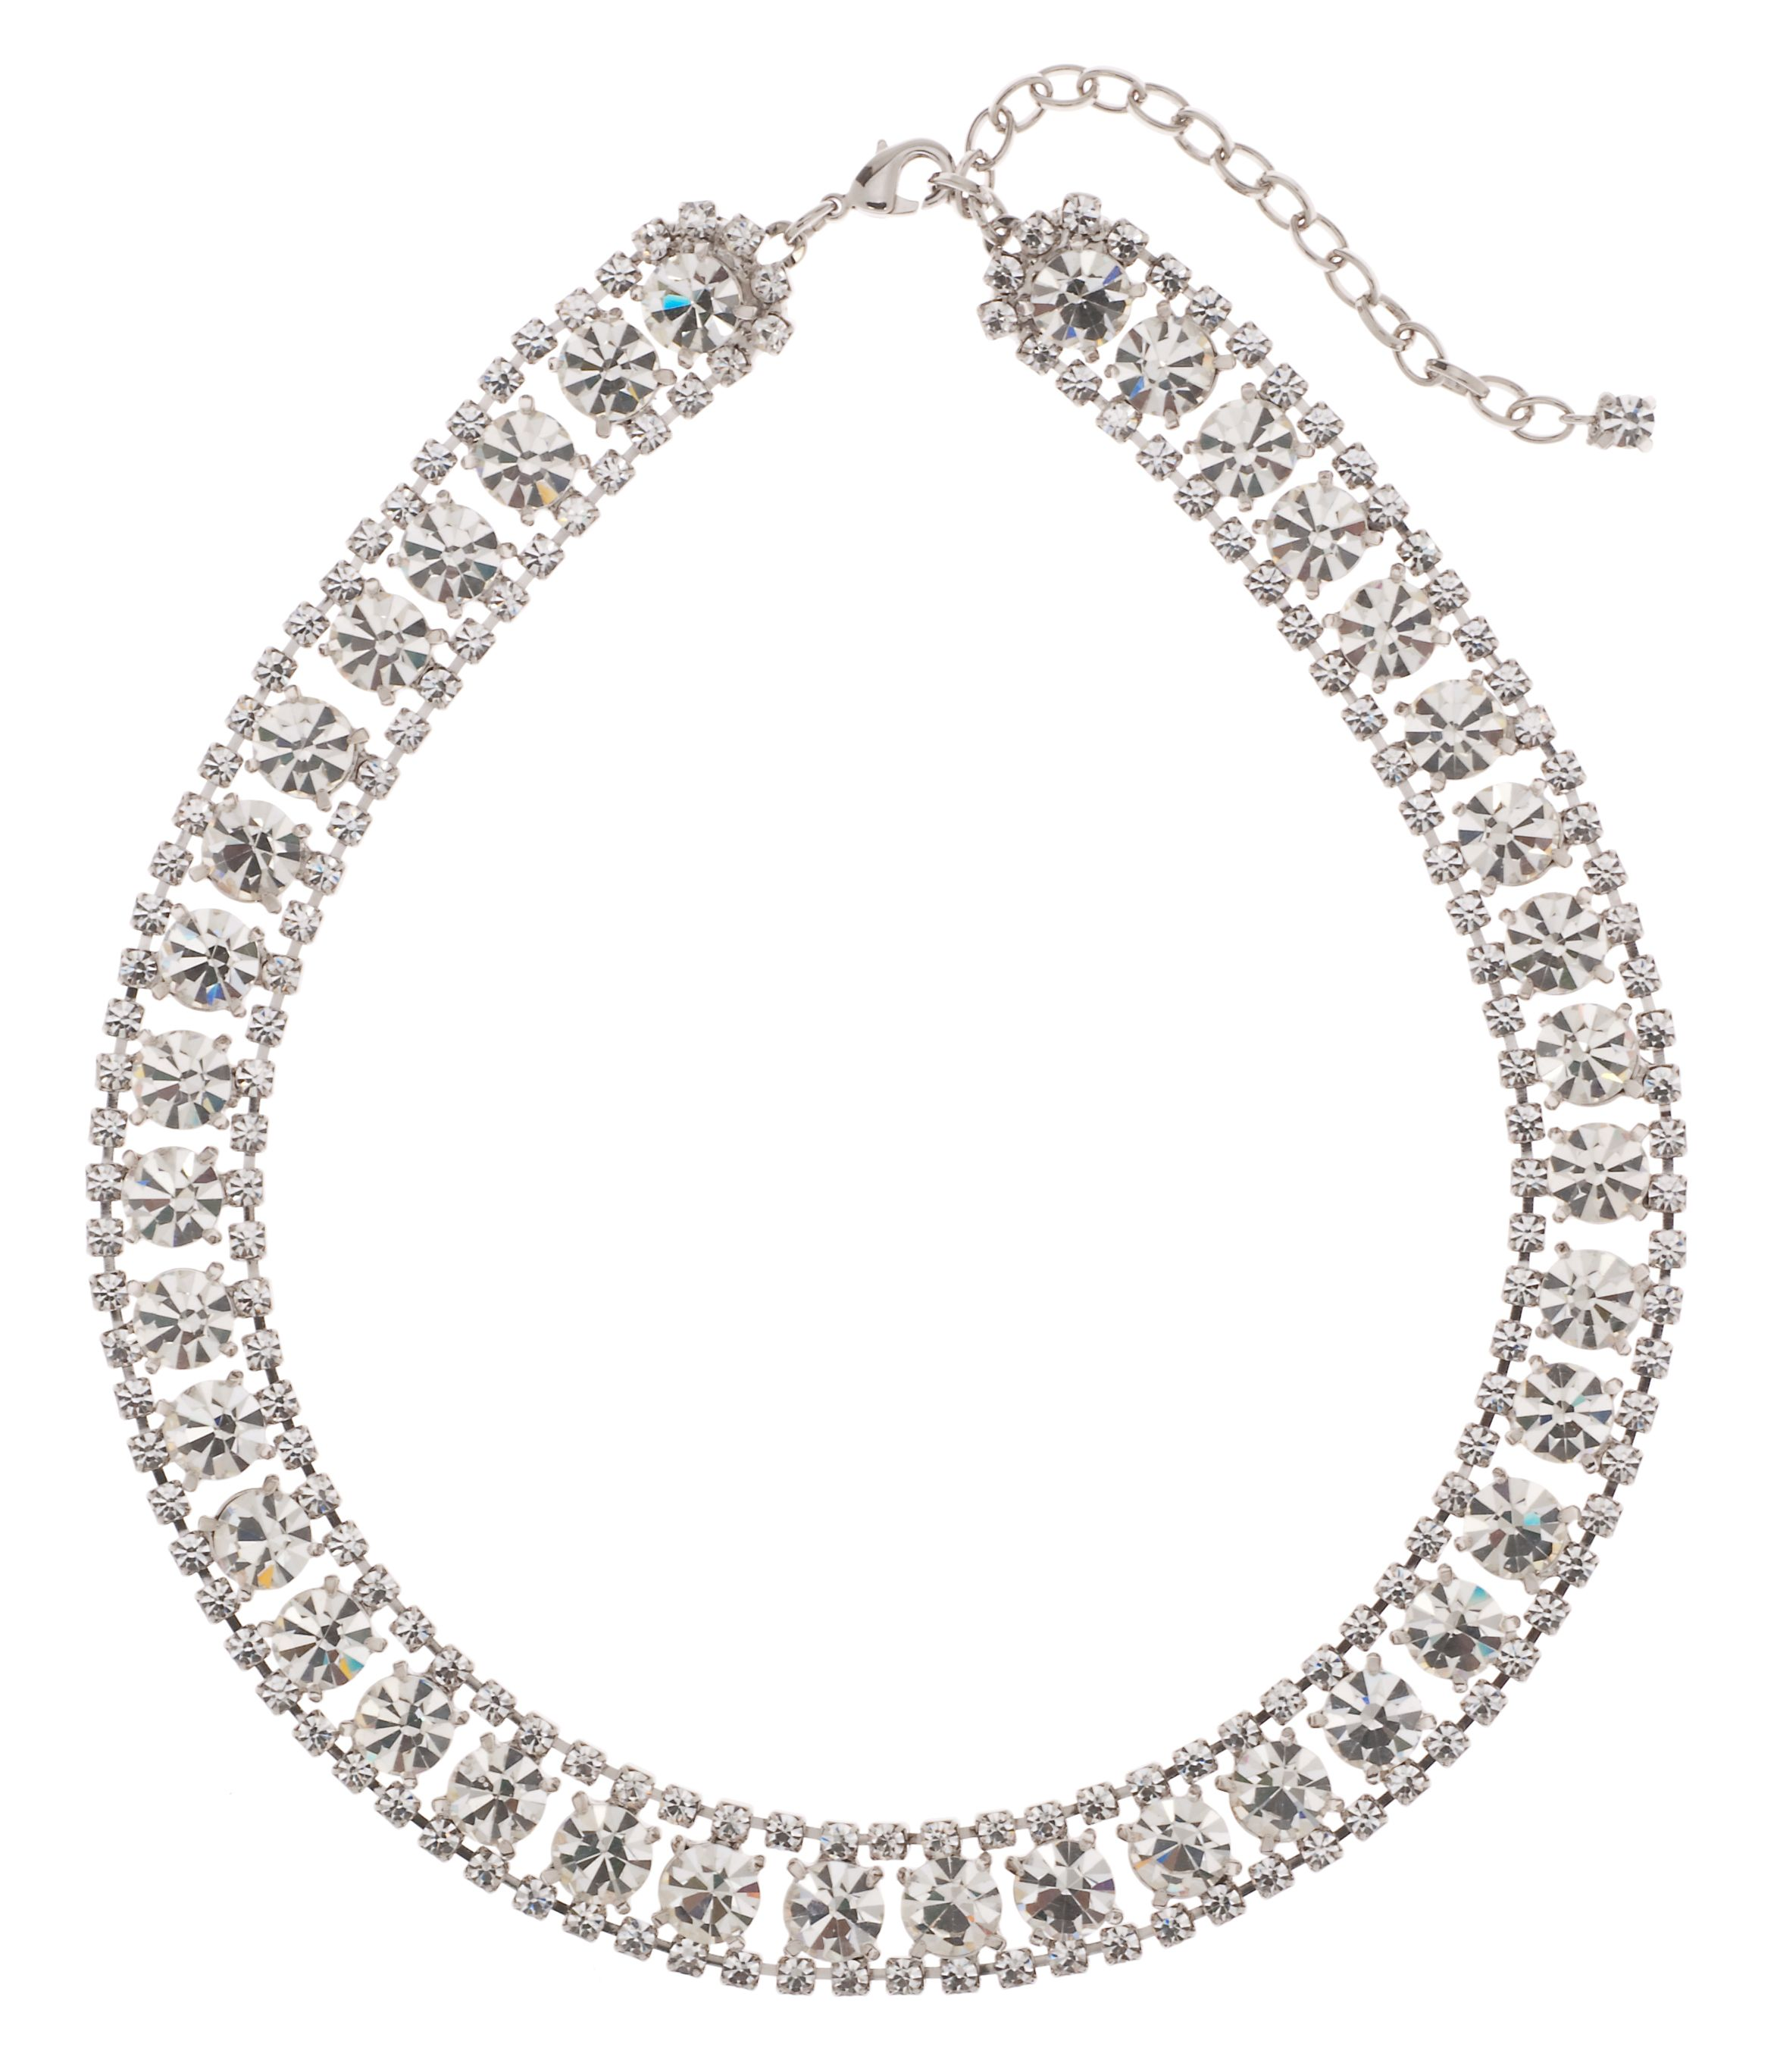 Bridal Encrusted Collar Necklace